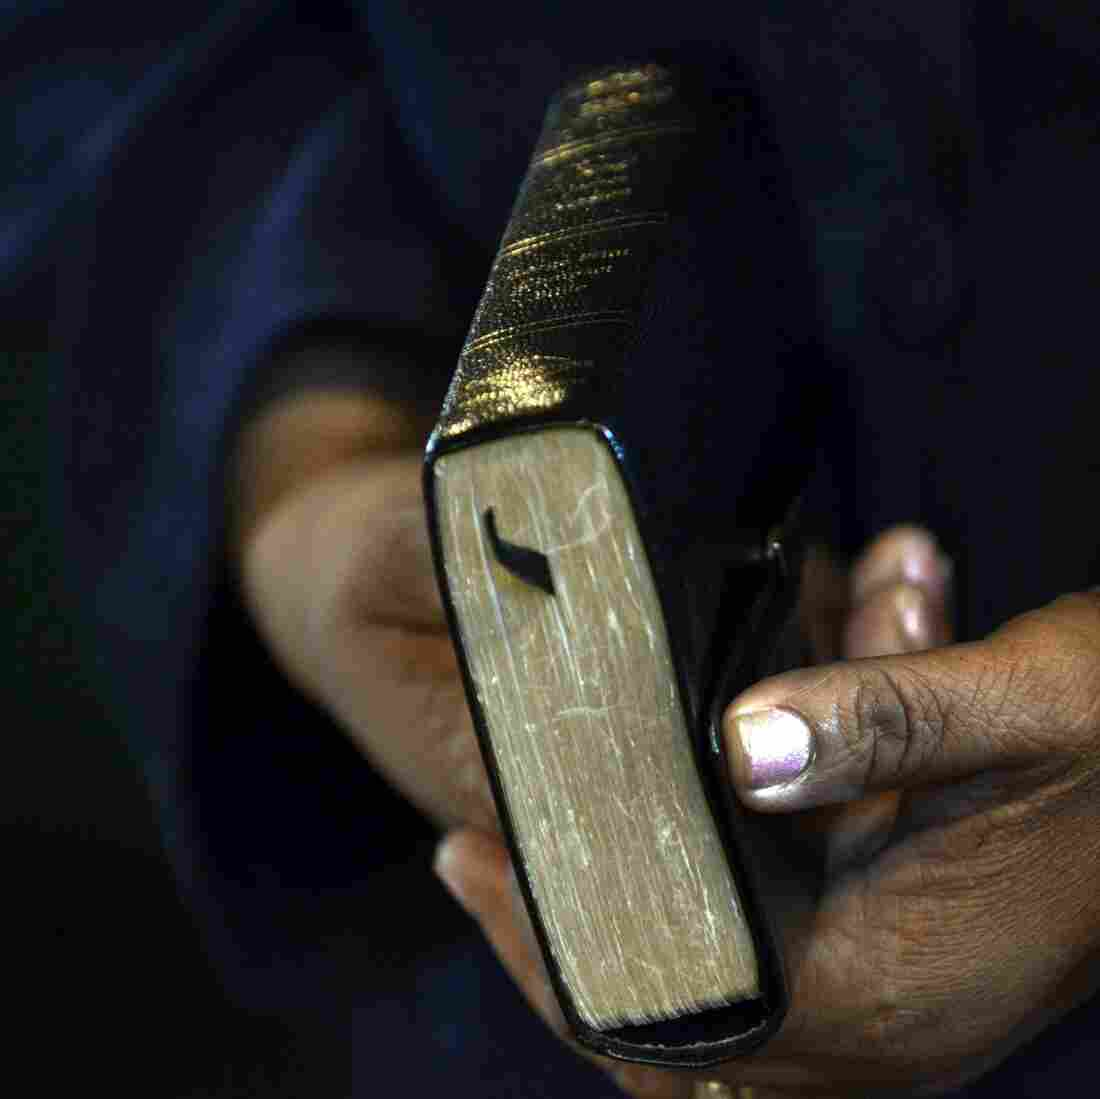 Louisiana Lawmaker Pulls Bill To Make Bible State's Official Book